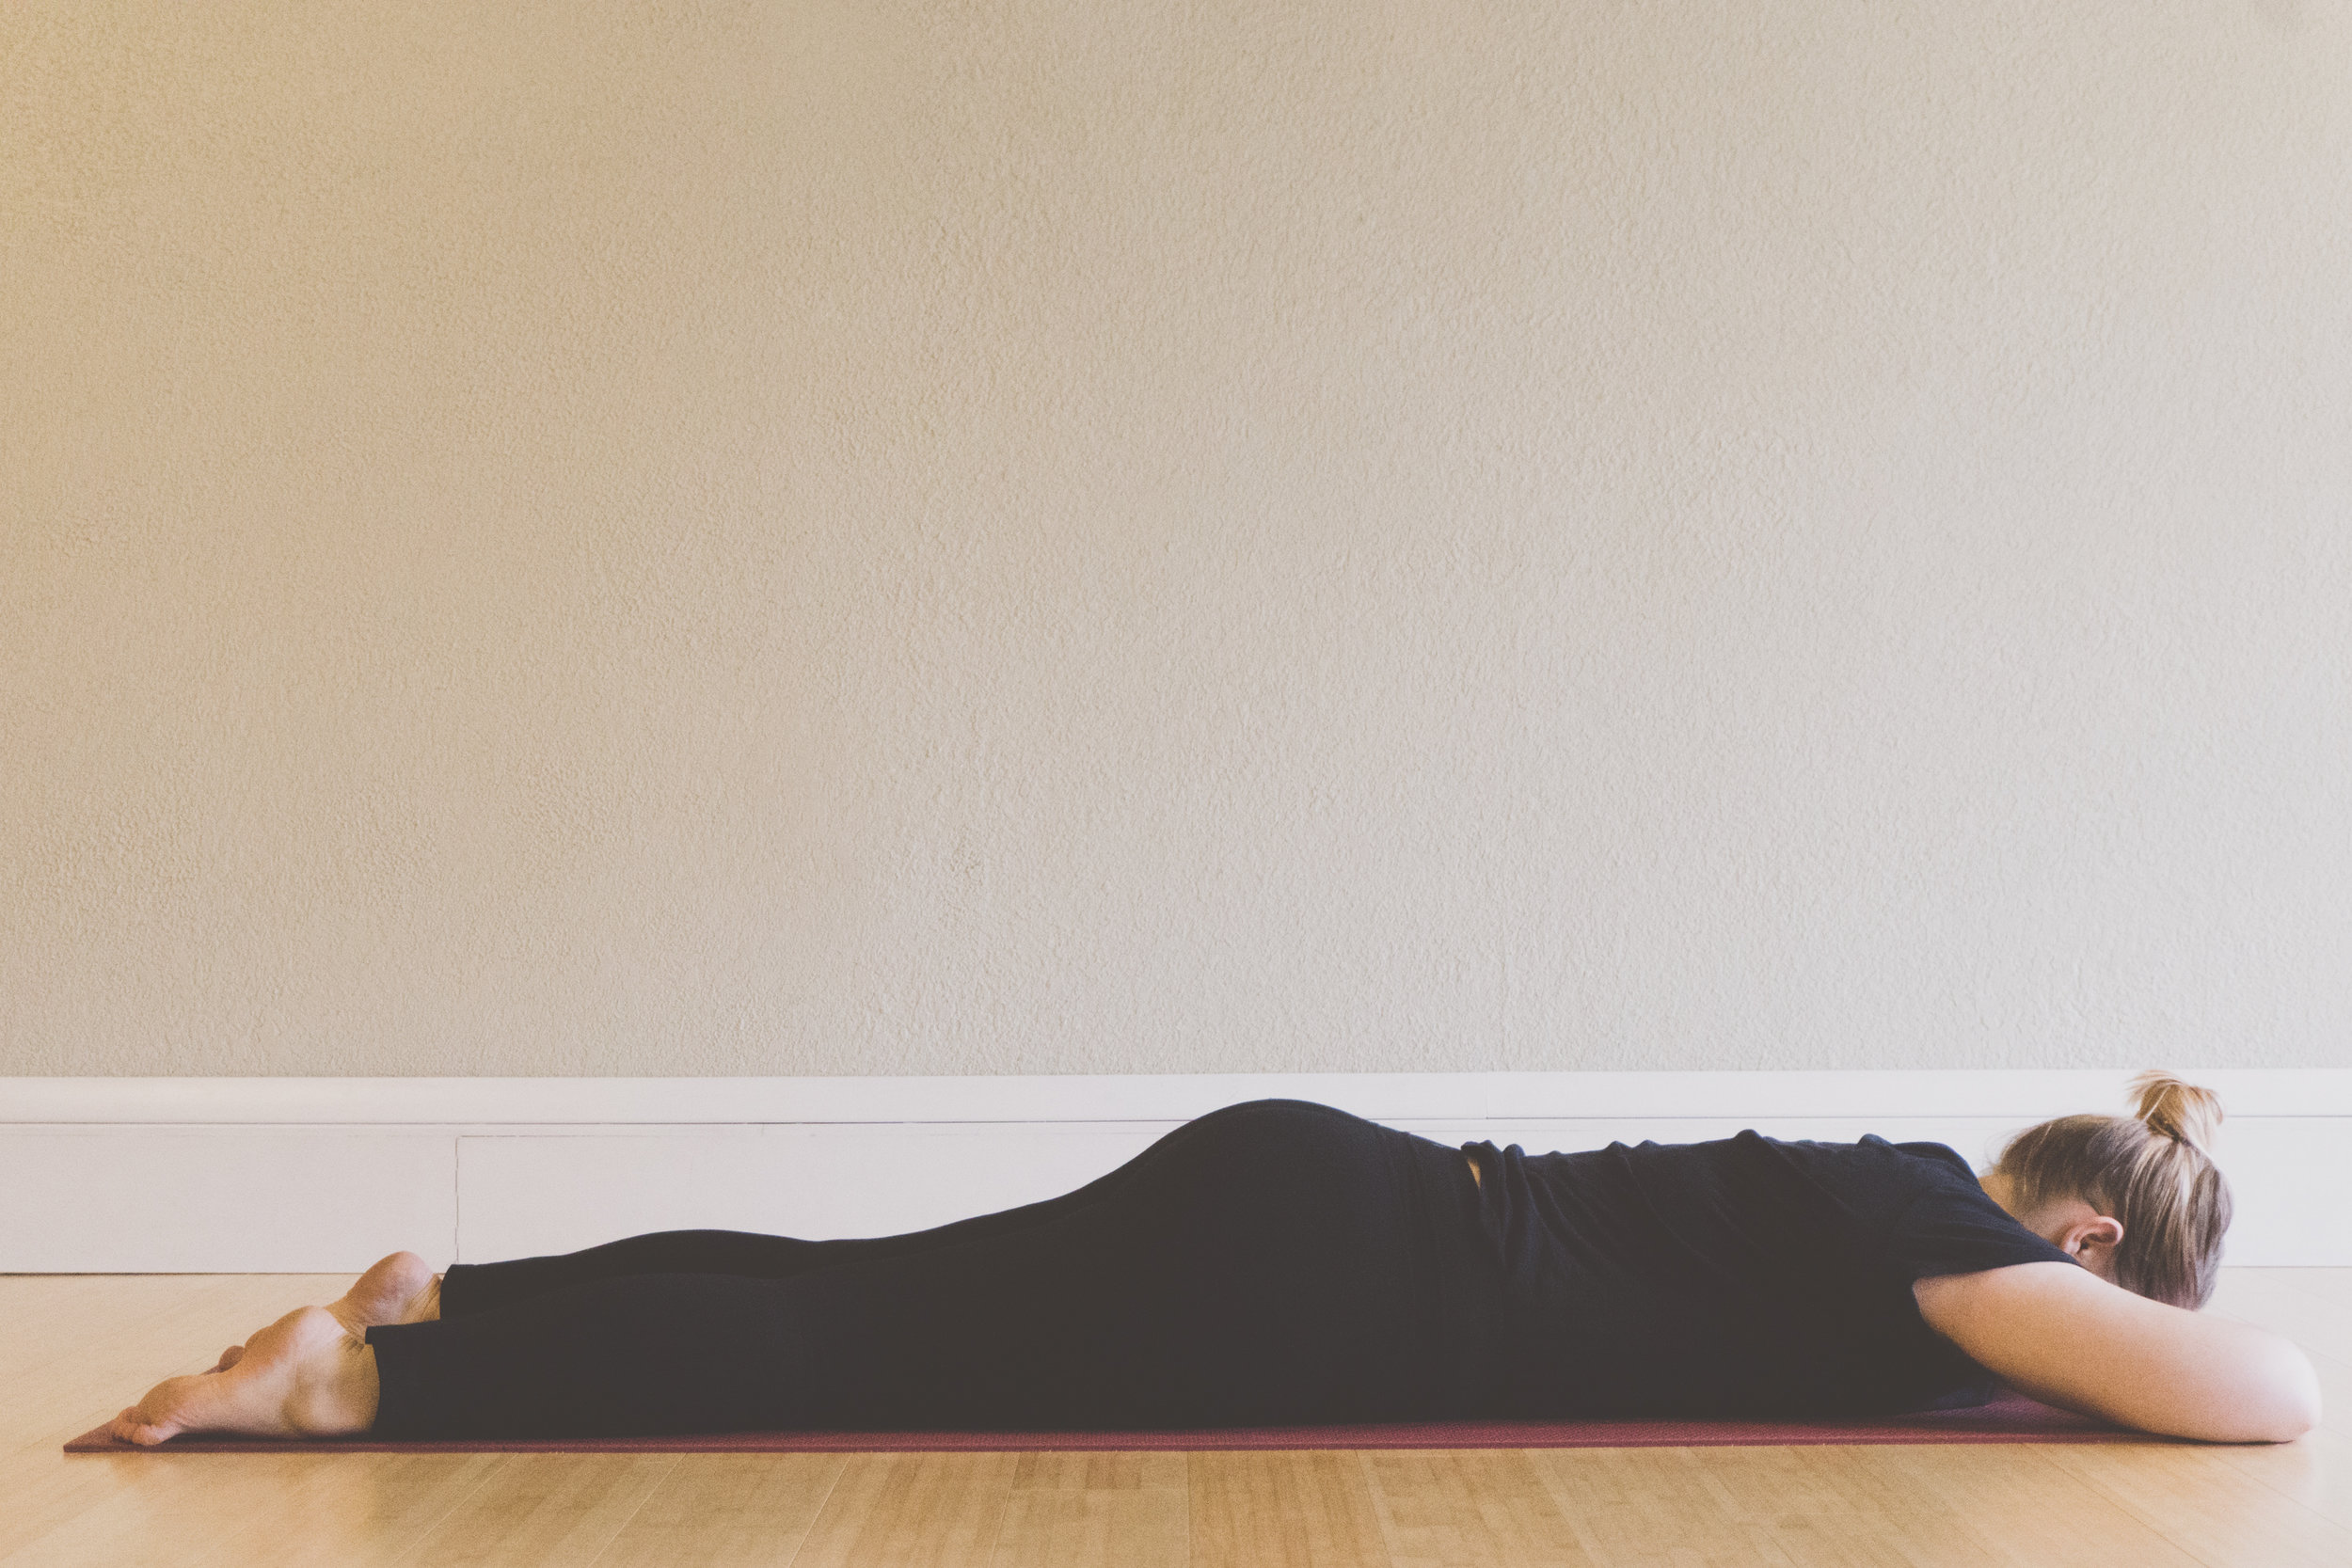 crocodile pose - For crocodile pose lie on your stomach. Stack your hands under your forehead using the back of your hands as a pillow. Let your feet turn out. Relax completely, and breathe deeply. Let your belly and low back move as you breathe. Stay for 6-8 breaths or more.